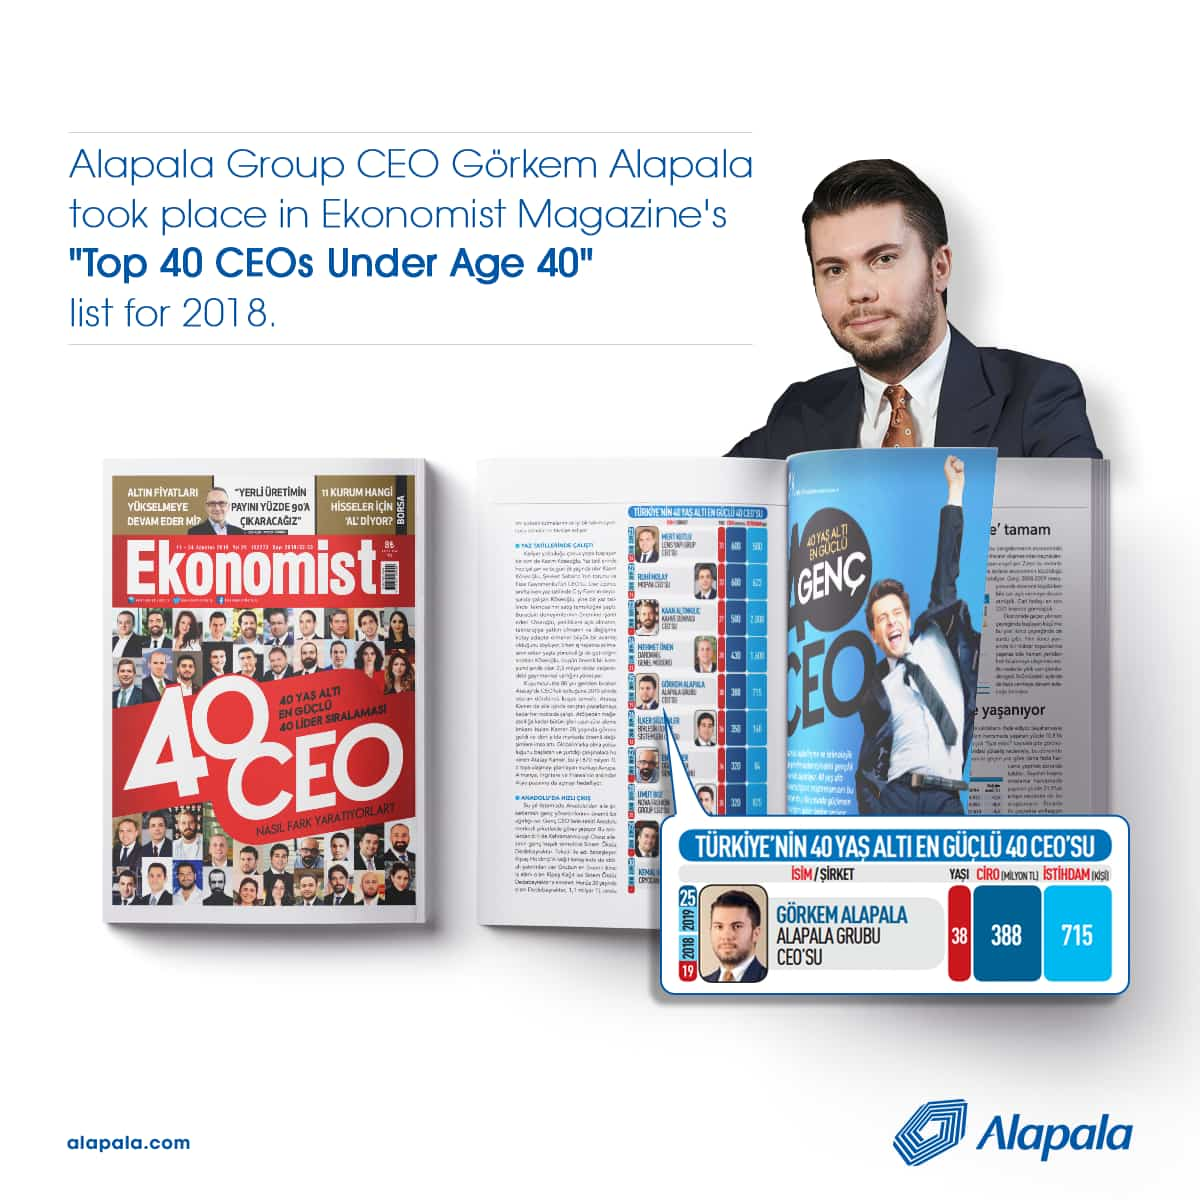 Alapala Group CEO Görkem Alapala ranked as one of the most successful 40 CEOs under age 40